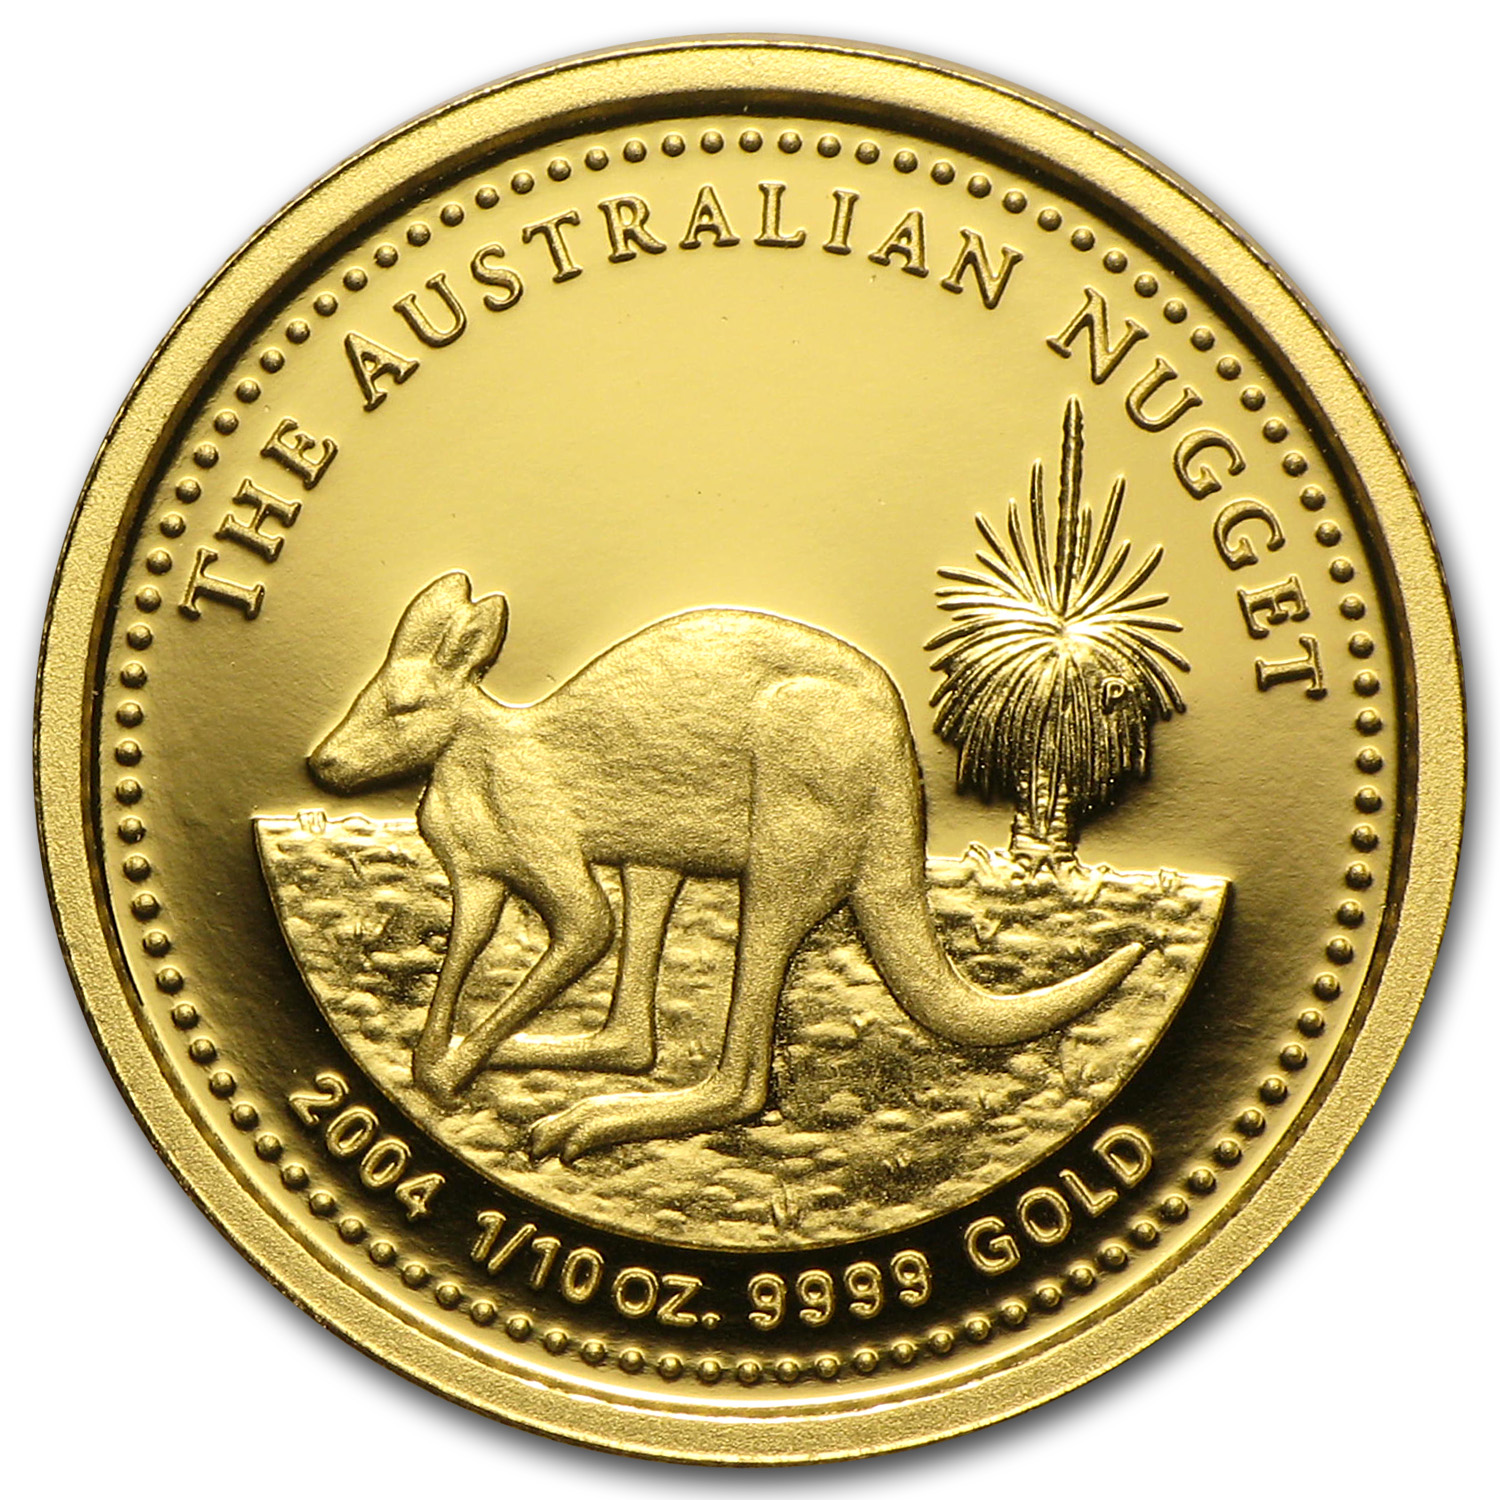 2004 Australia 1/10 oz Proof Gold Nugget